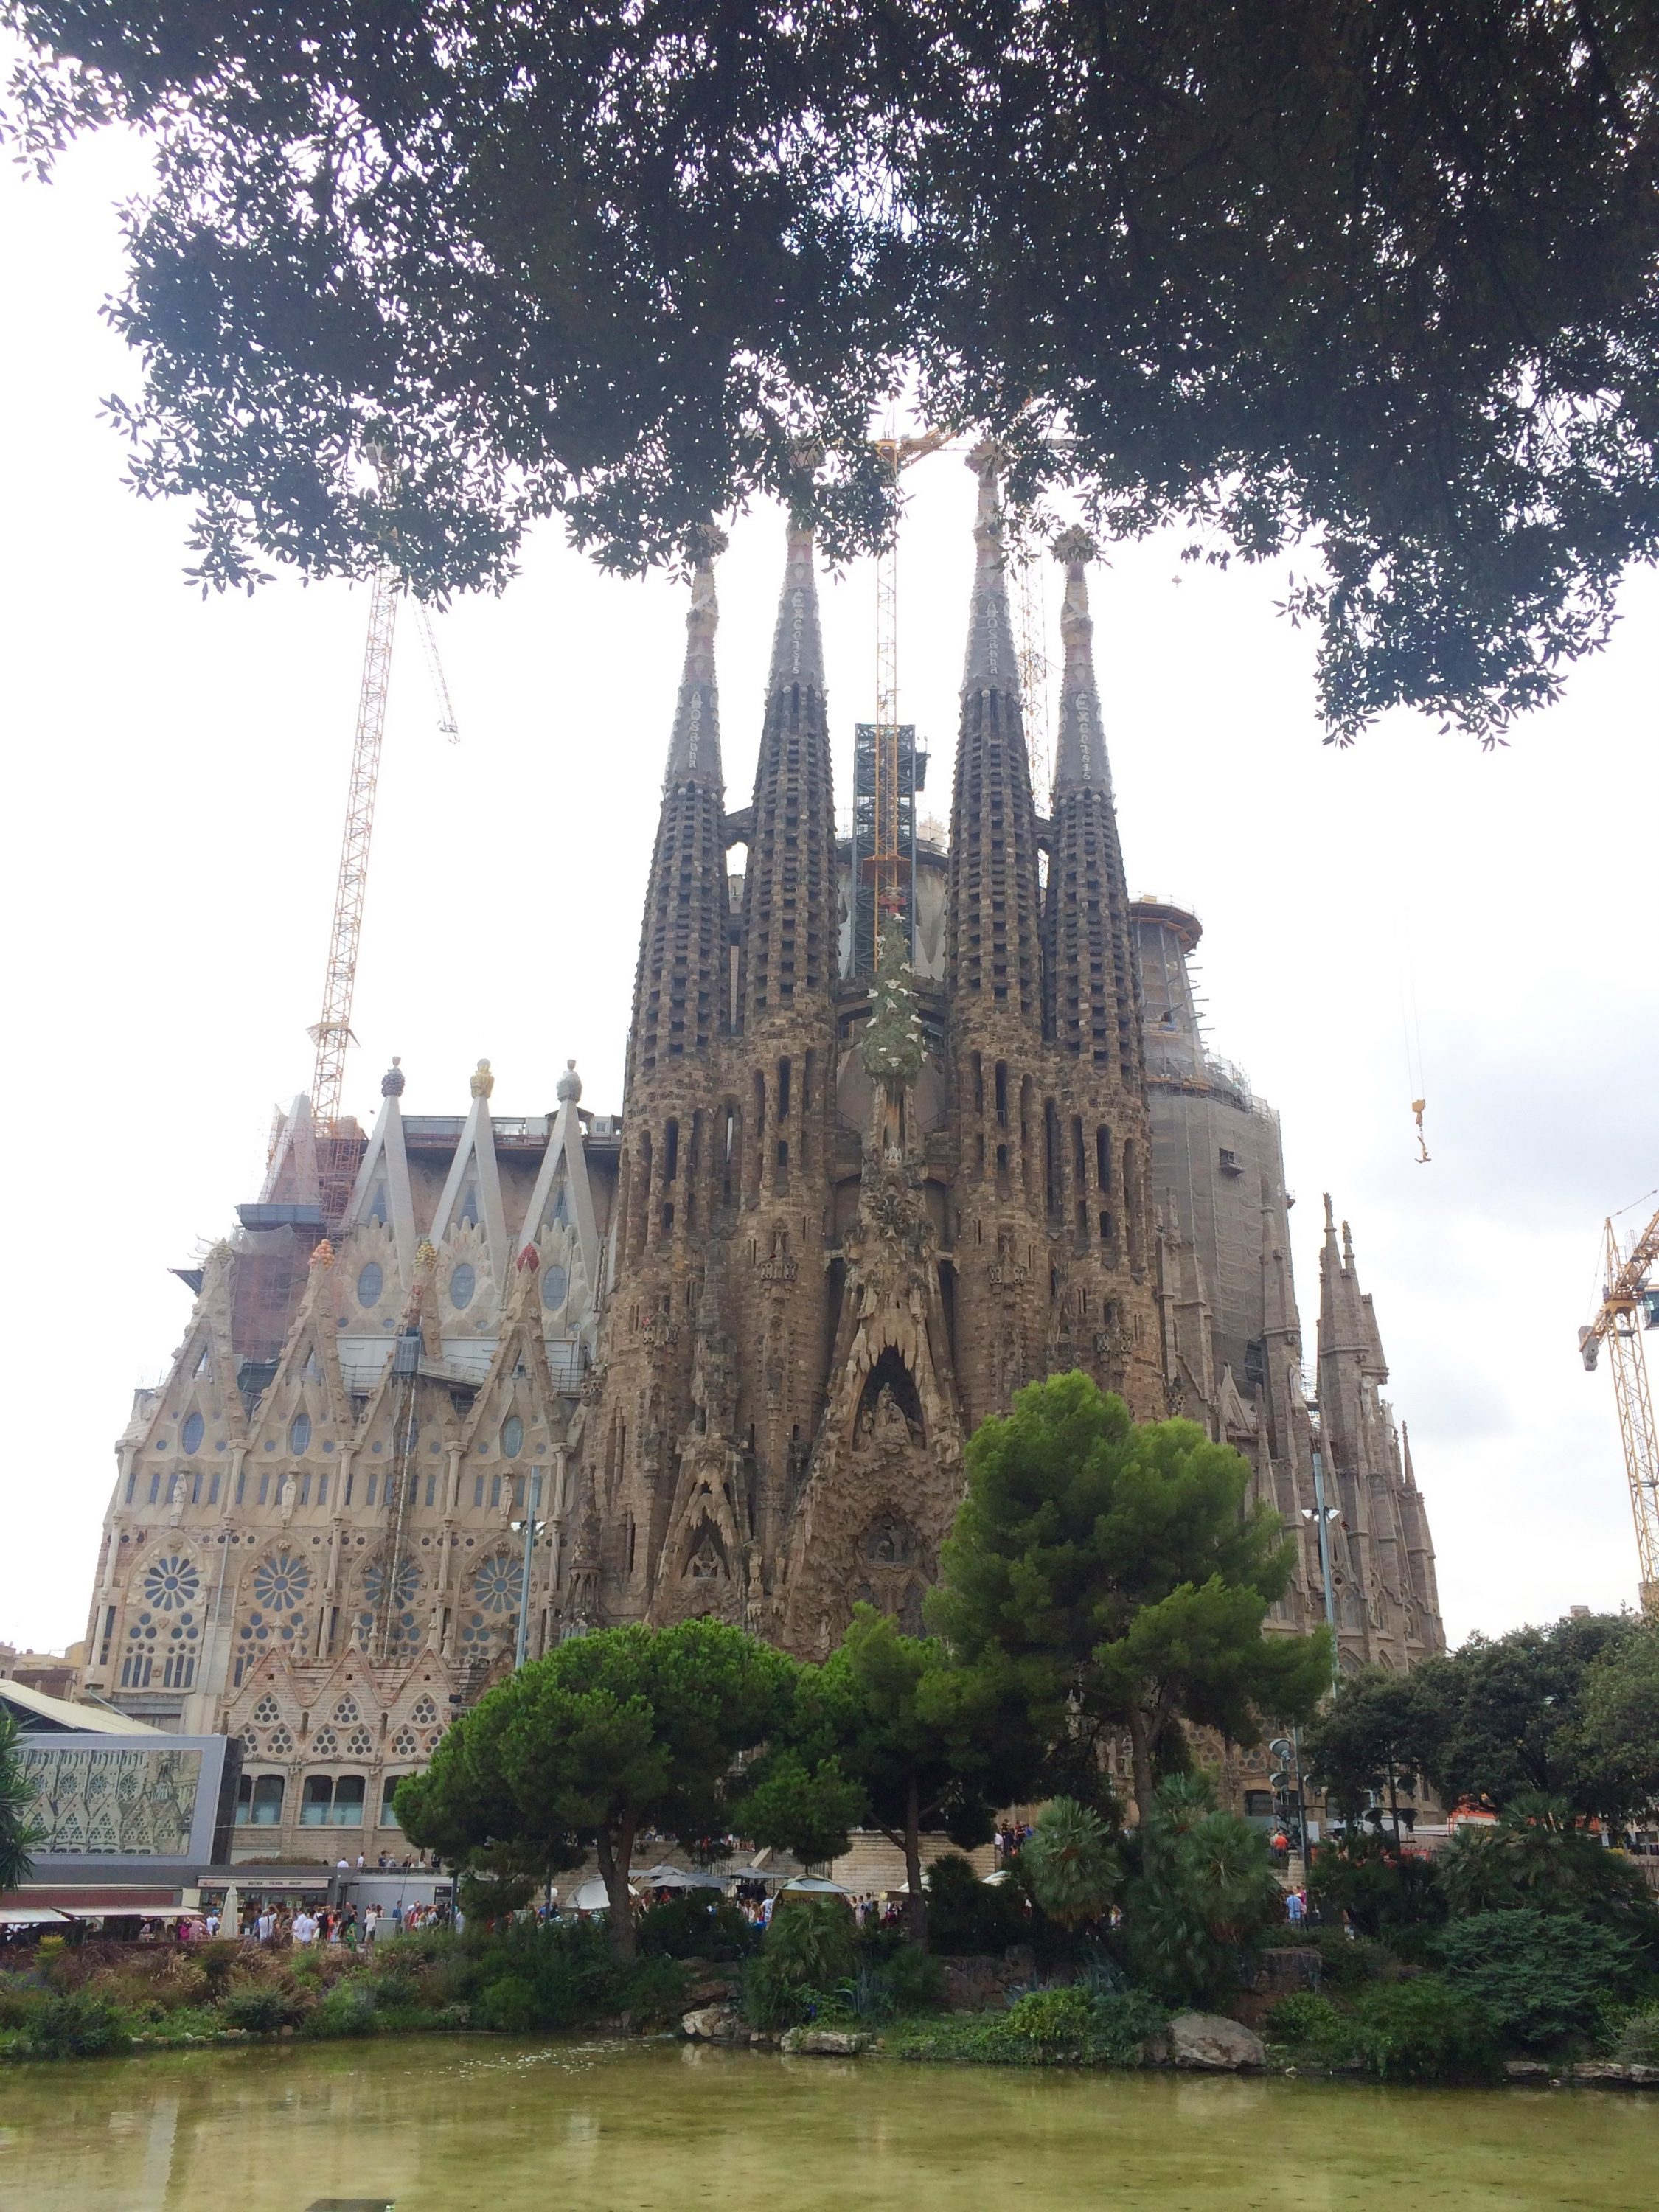 The amazing La Sagrada Familia